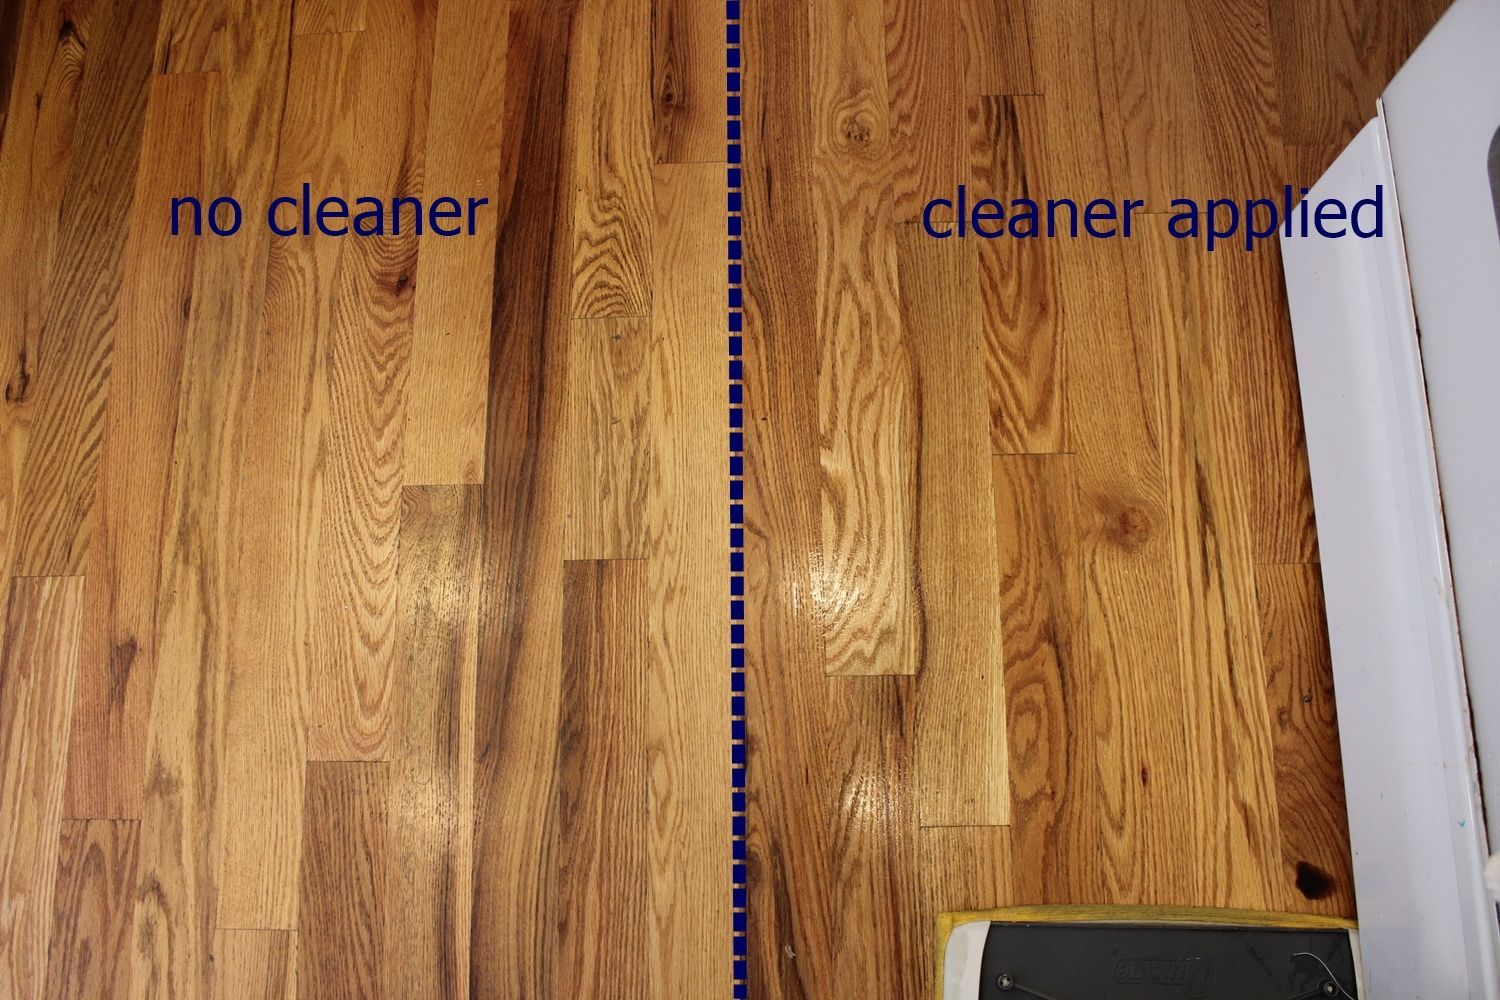 Diy Wood Floor Cleaner Ly To